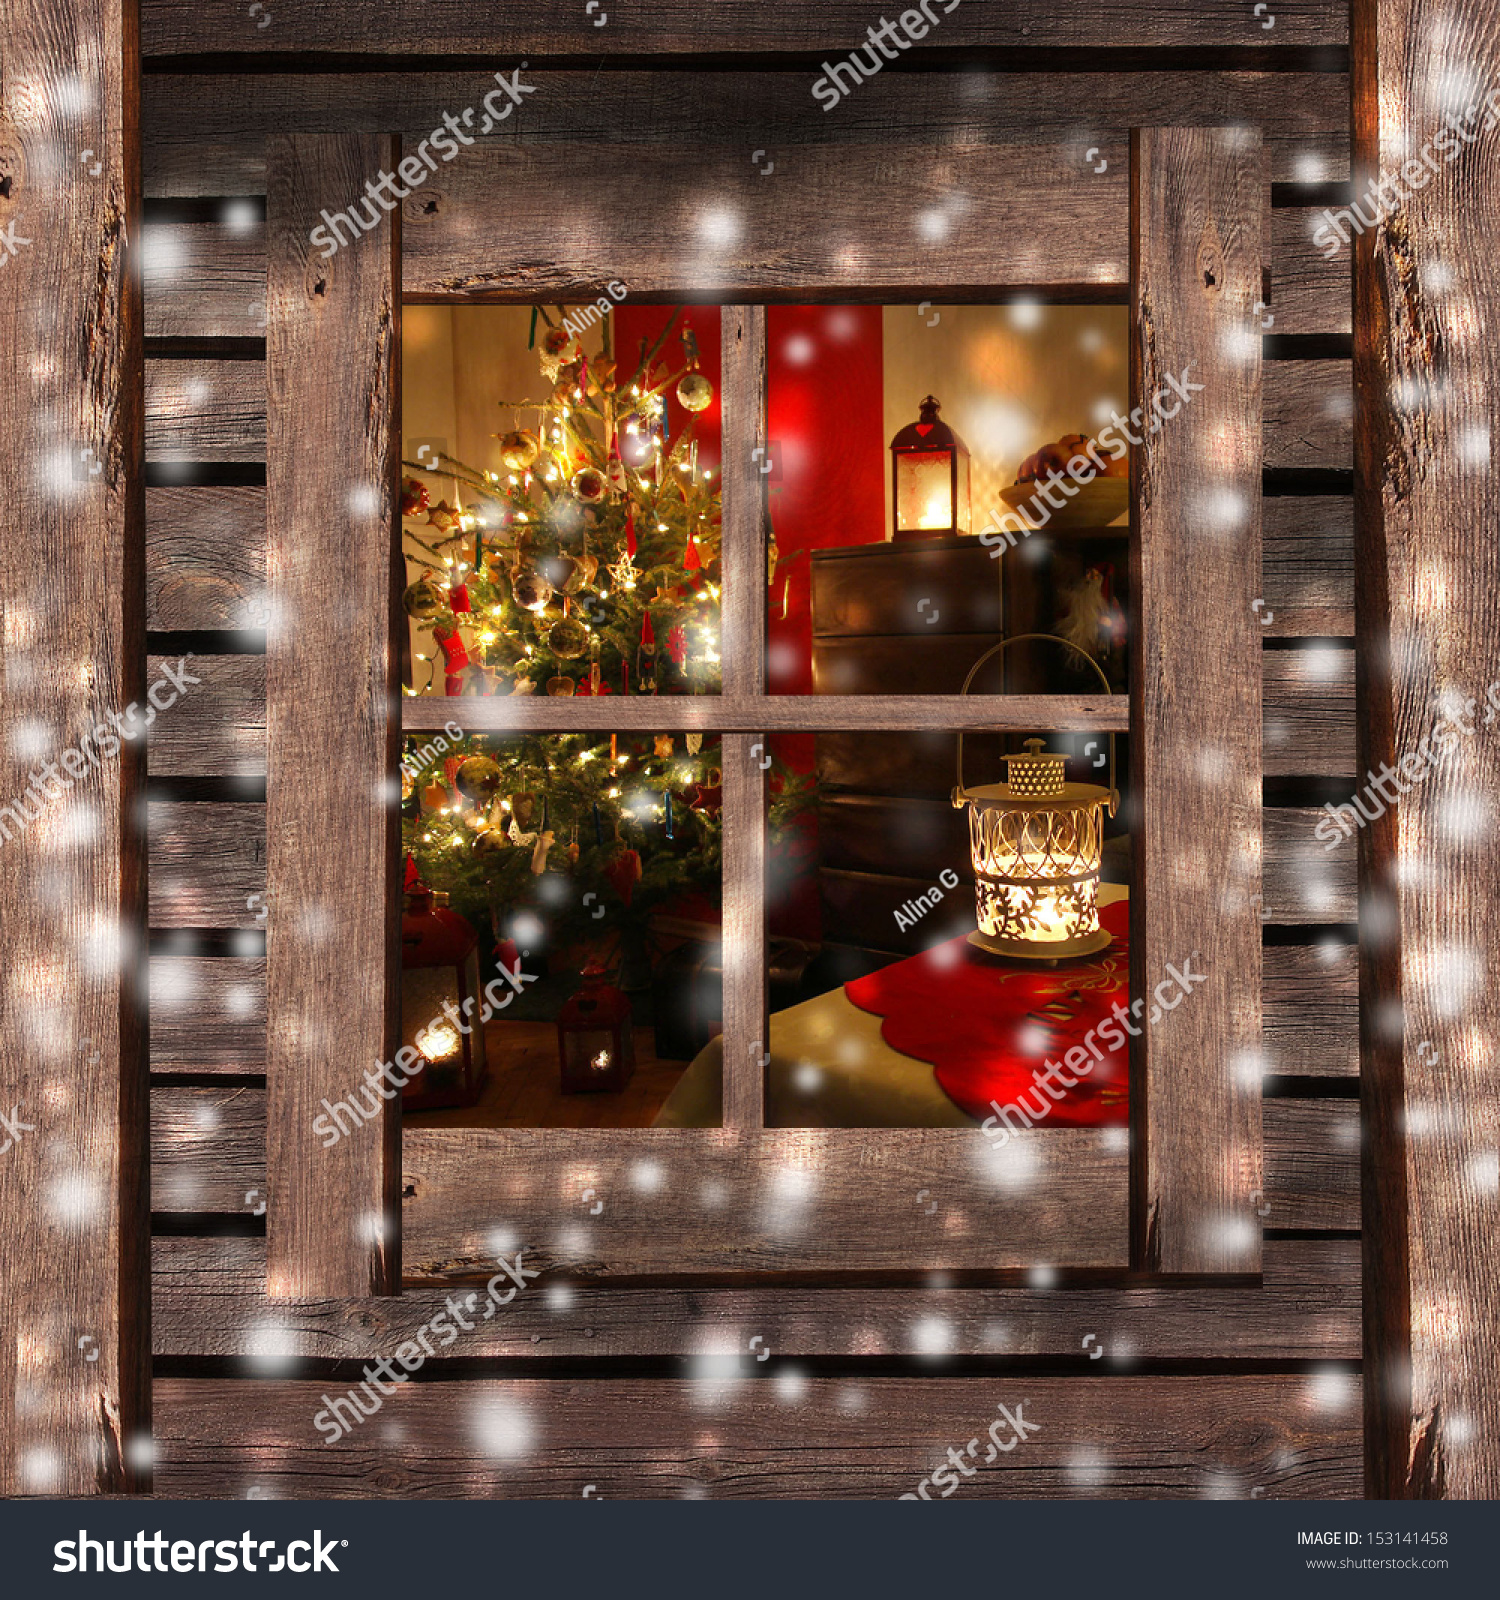 Christmas cabin interior - Christmas Tree And Fireplace Seen Through A Wooden Cabin Window